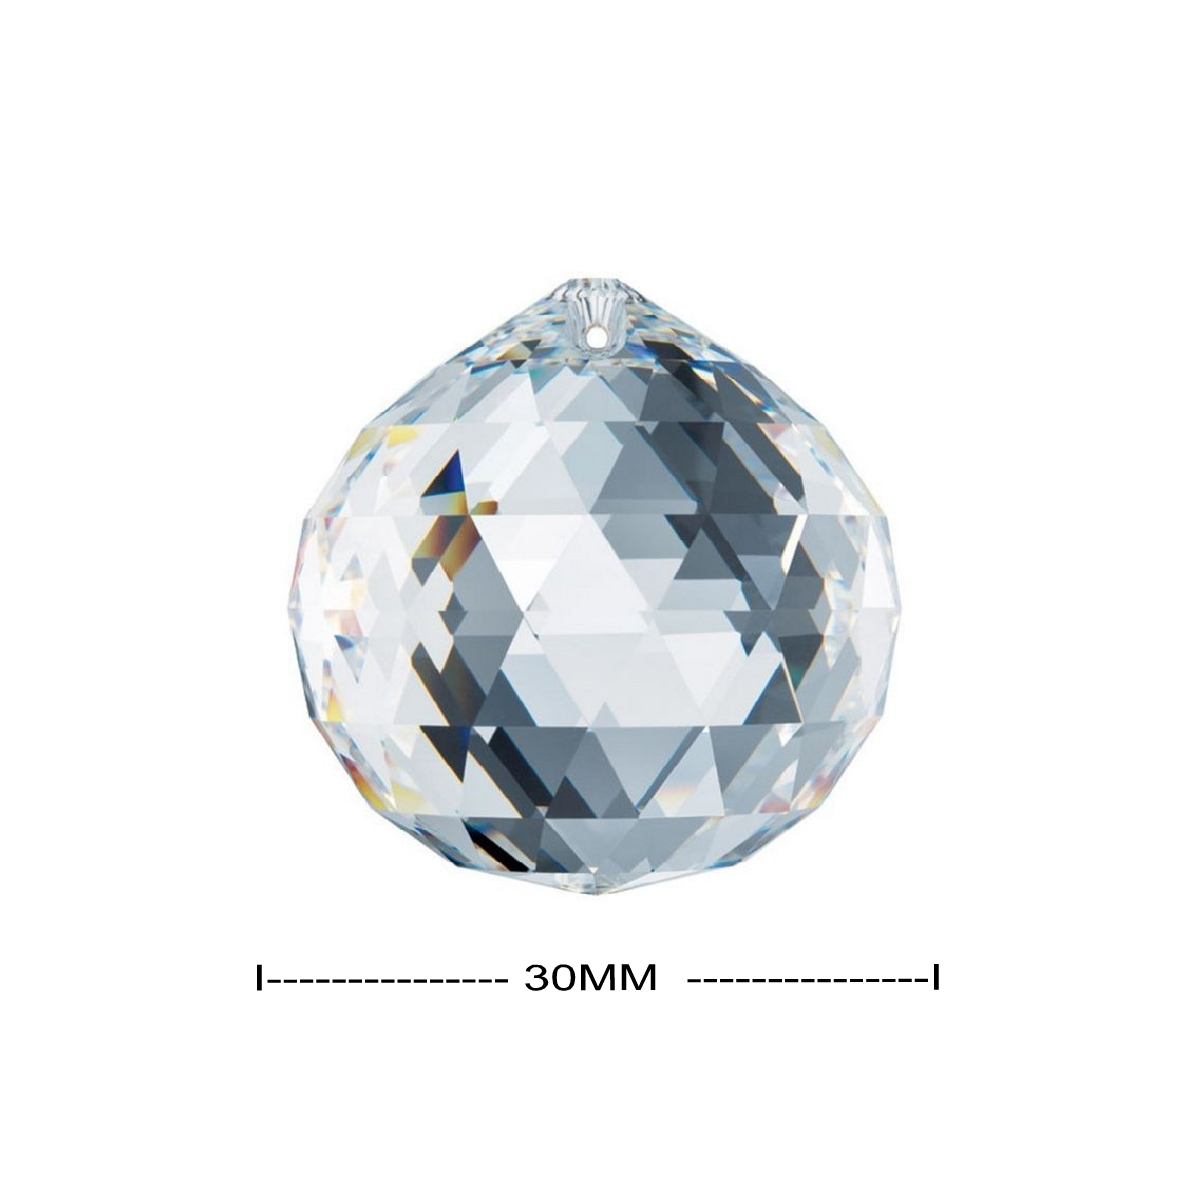 Swarovski 30mm Infamous Strass Clear Crystal Ball Prism 8558-30